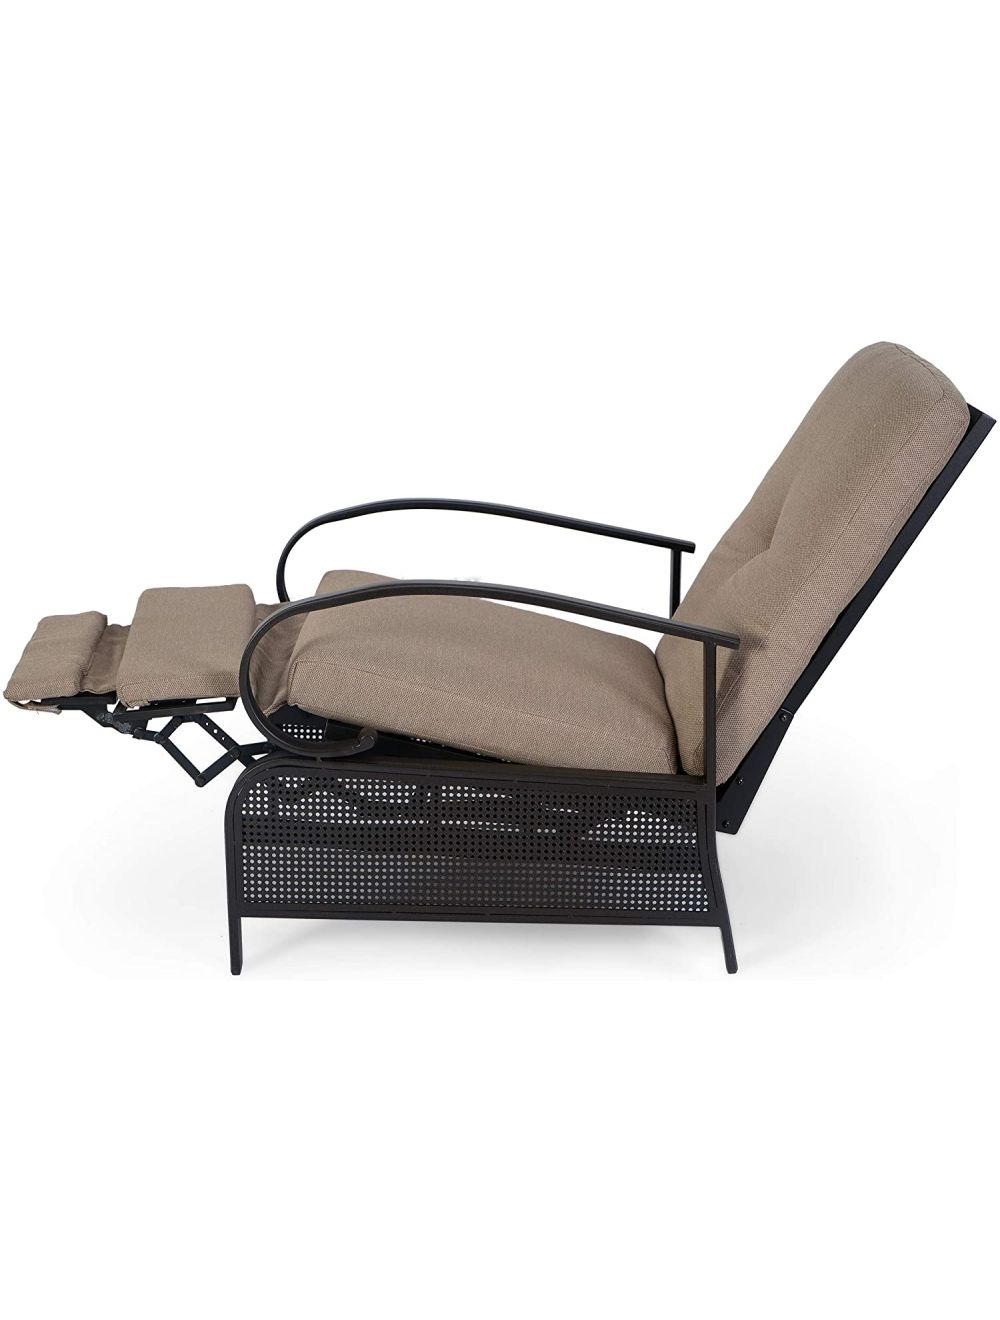 kozyard adjustable patio reclining lounge chair with strong extendable metal frame and removable cushions for outdoor reading sunbathing or